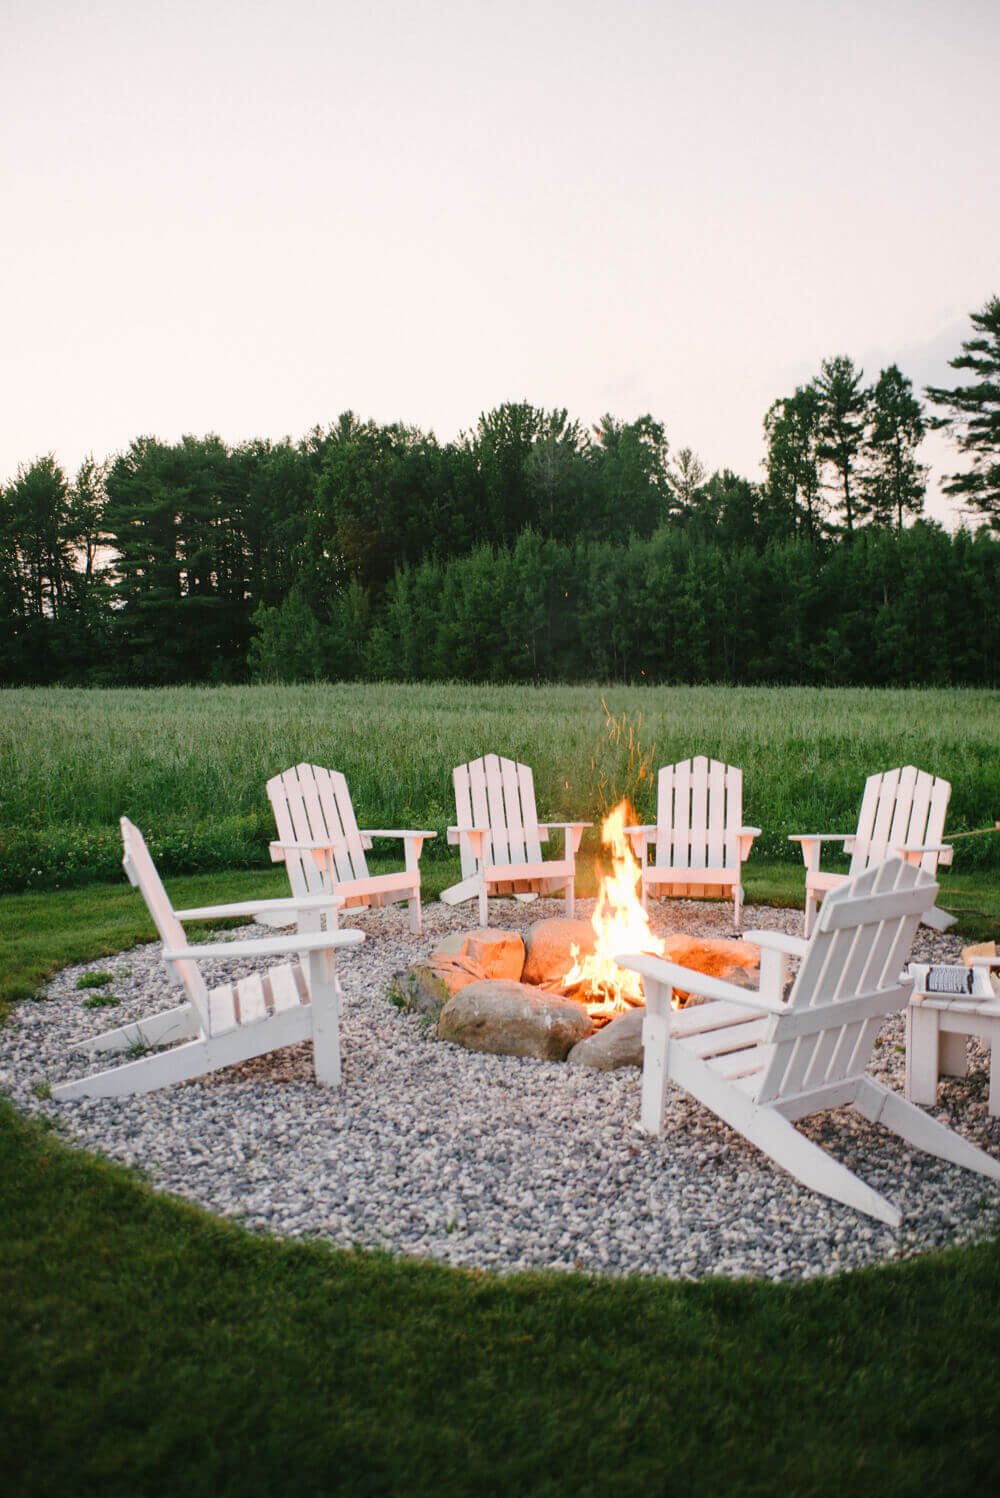 An Enjoyable Sunset by the Fire   Awesome Firepit Area Ideas For Your Outdoor Activities